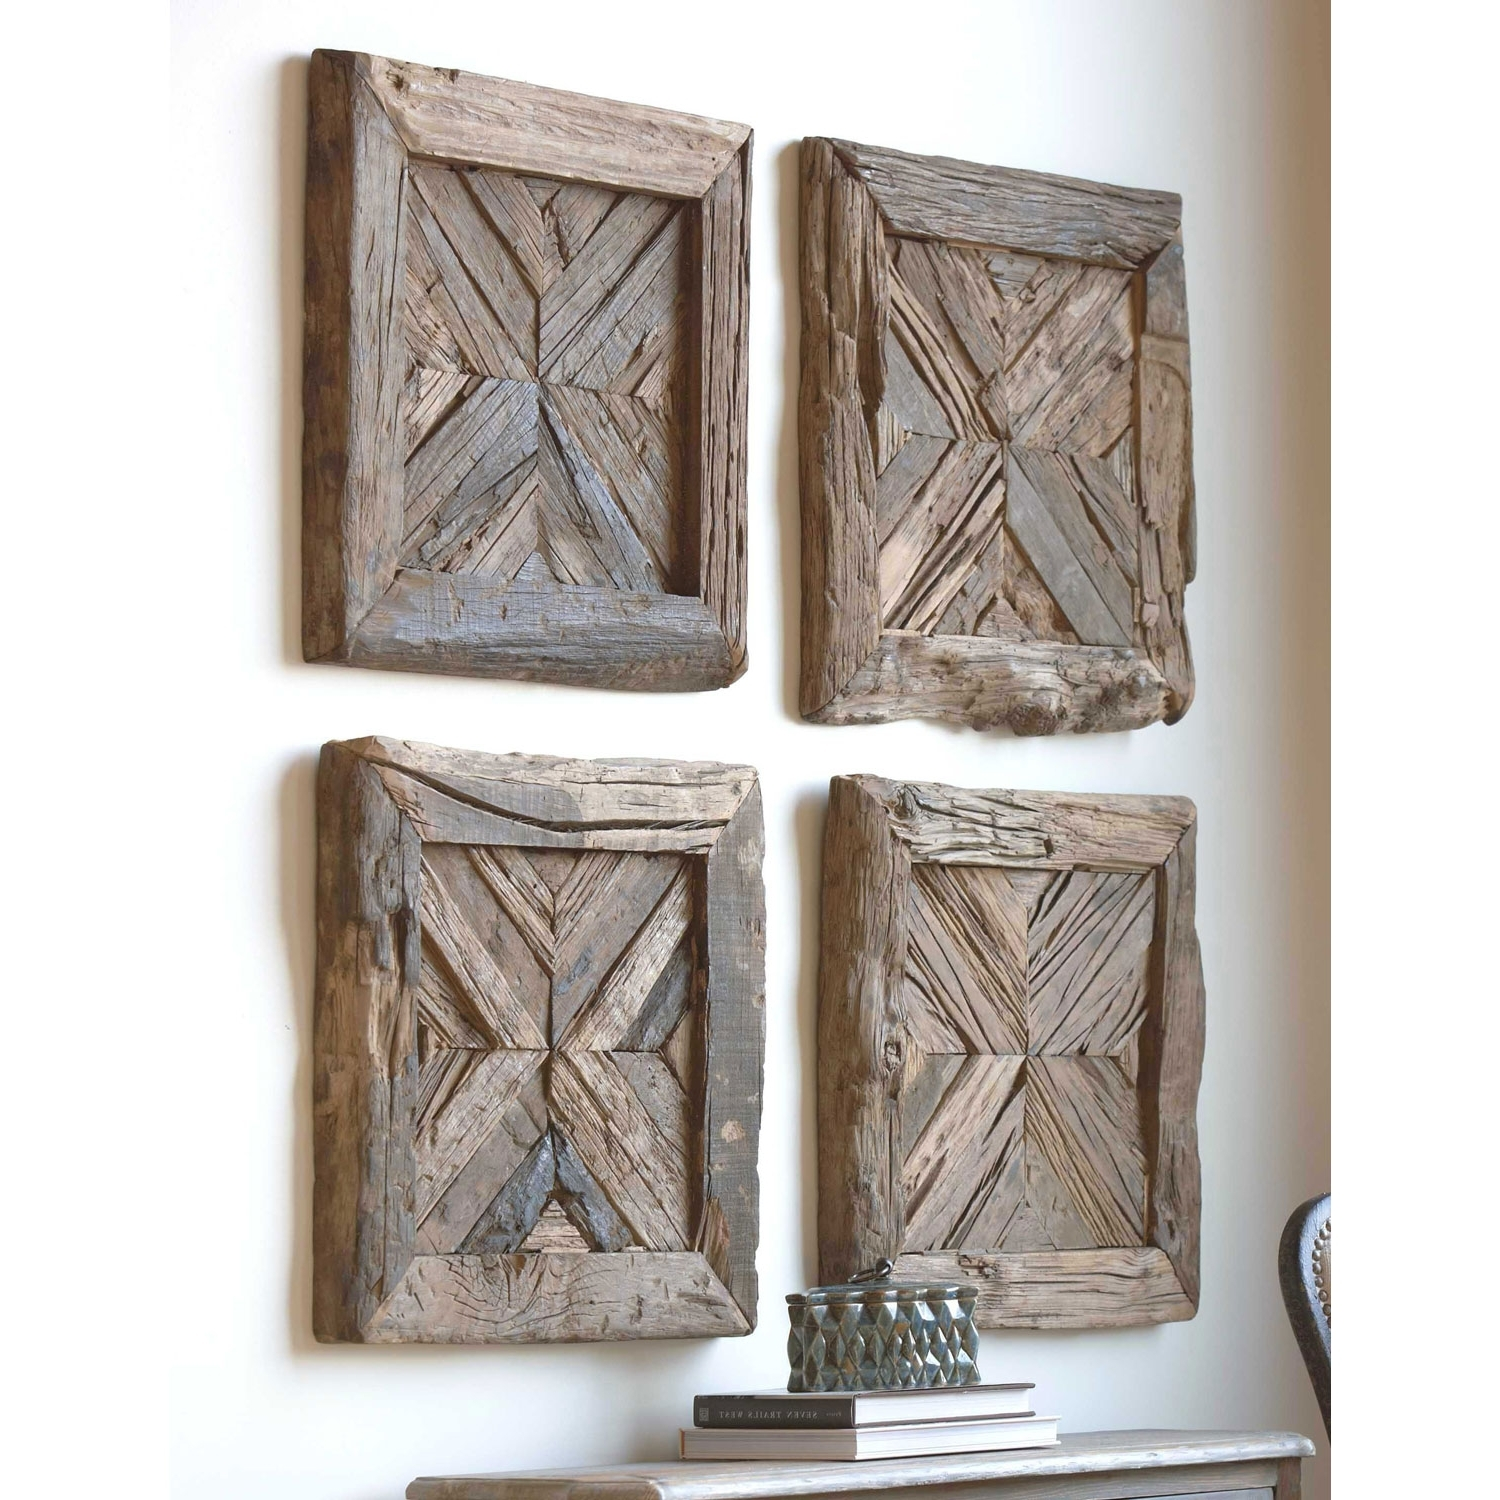 Widely Used Wall Art On Wood Regarding Rennick Rustic Wood Wall Art Uttermost Wall Sculpture Wall Decor (View 11 of 15)